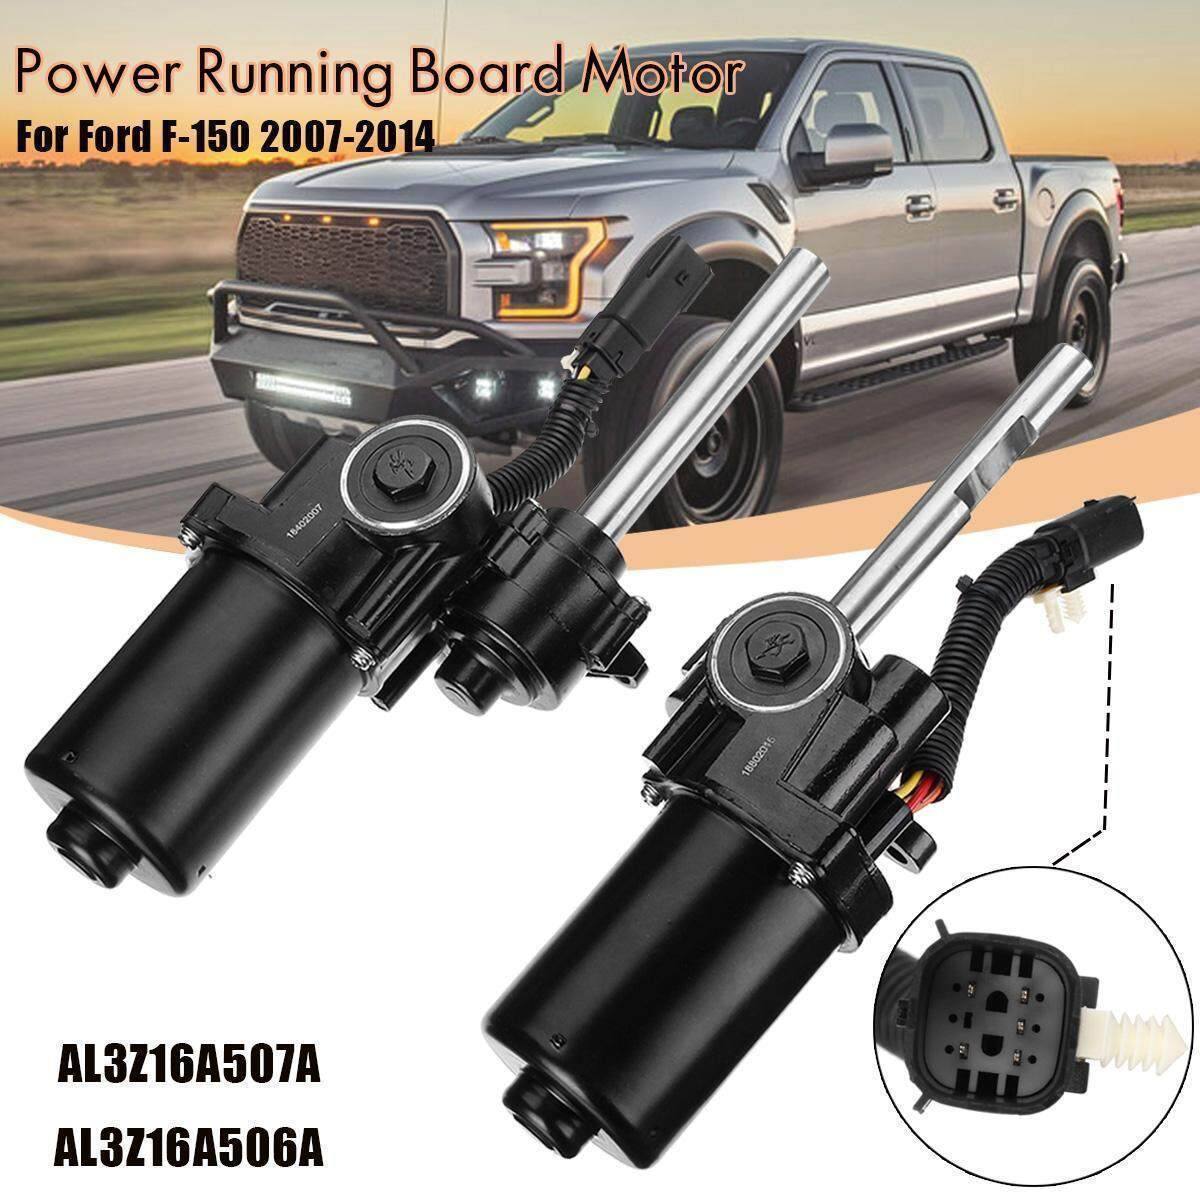 for Ford F-150 Power Running Board Motor AL3Z16A506A Front Right Driver side